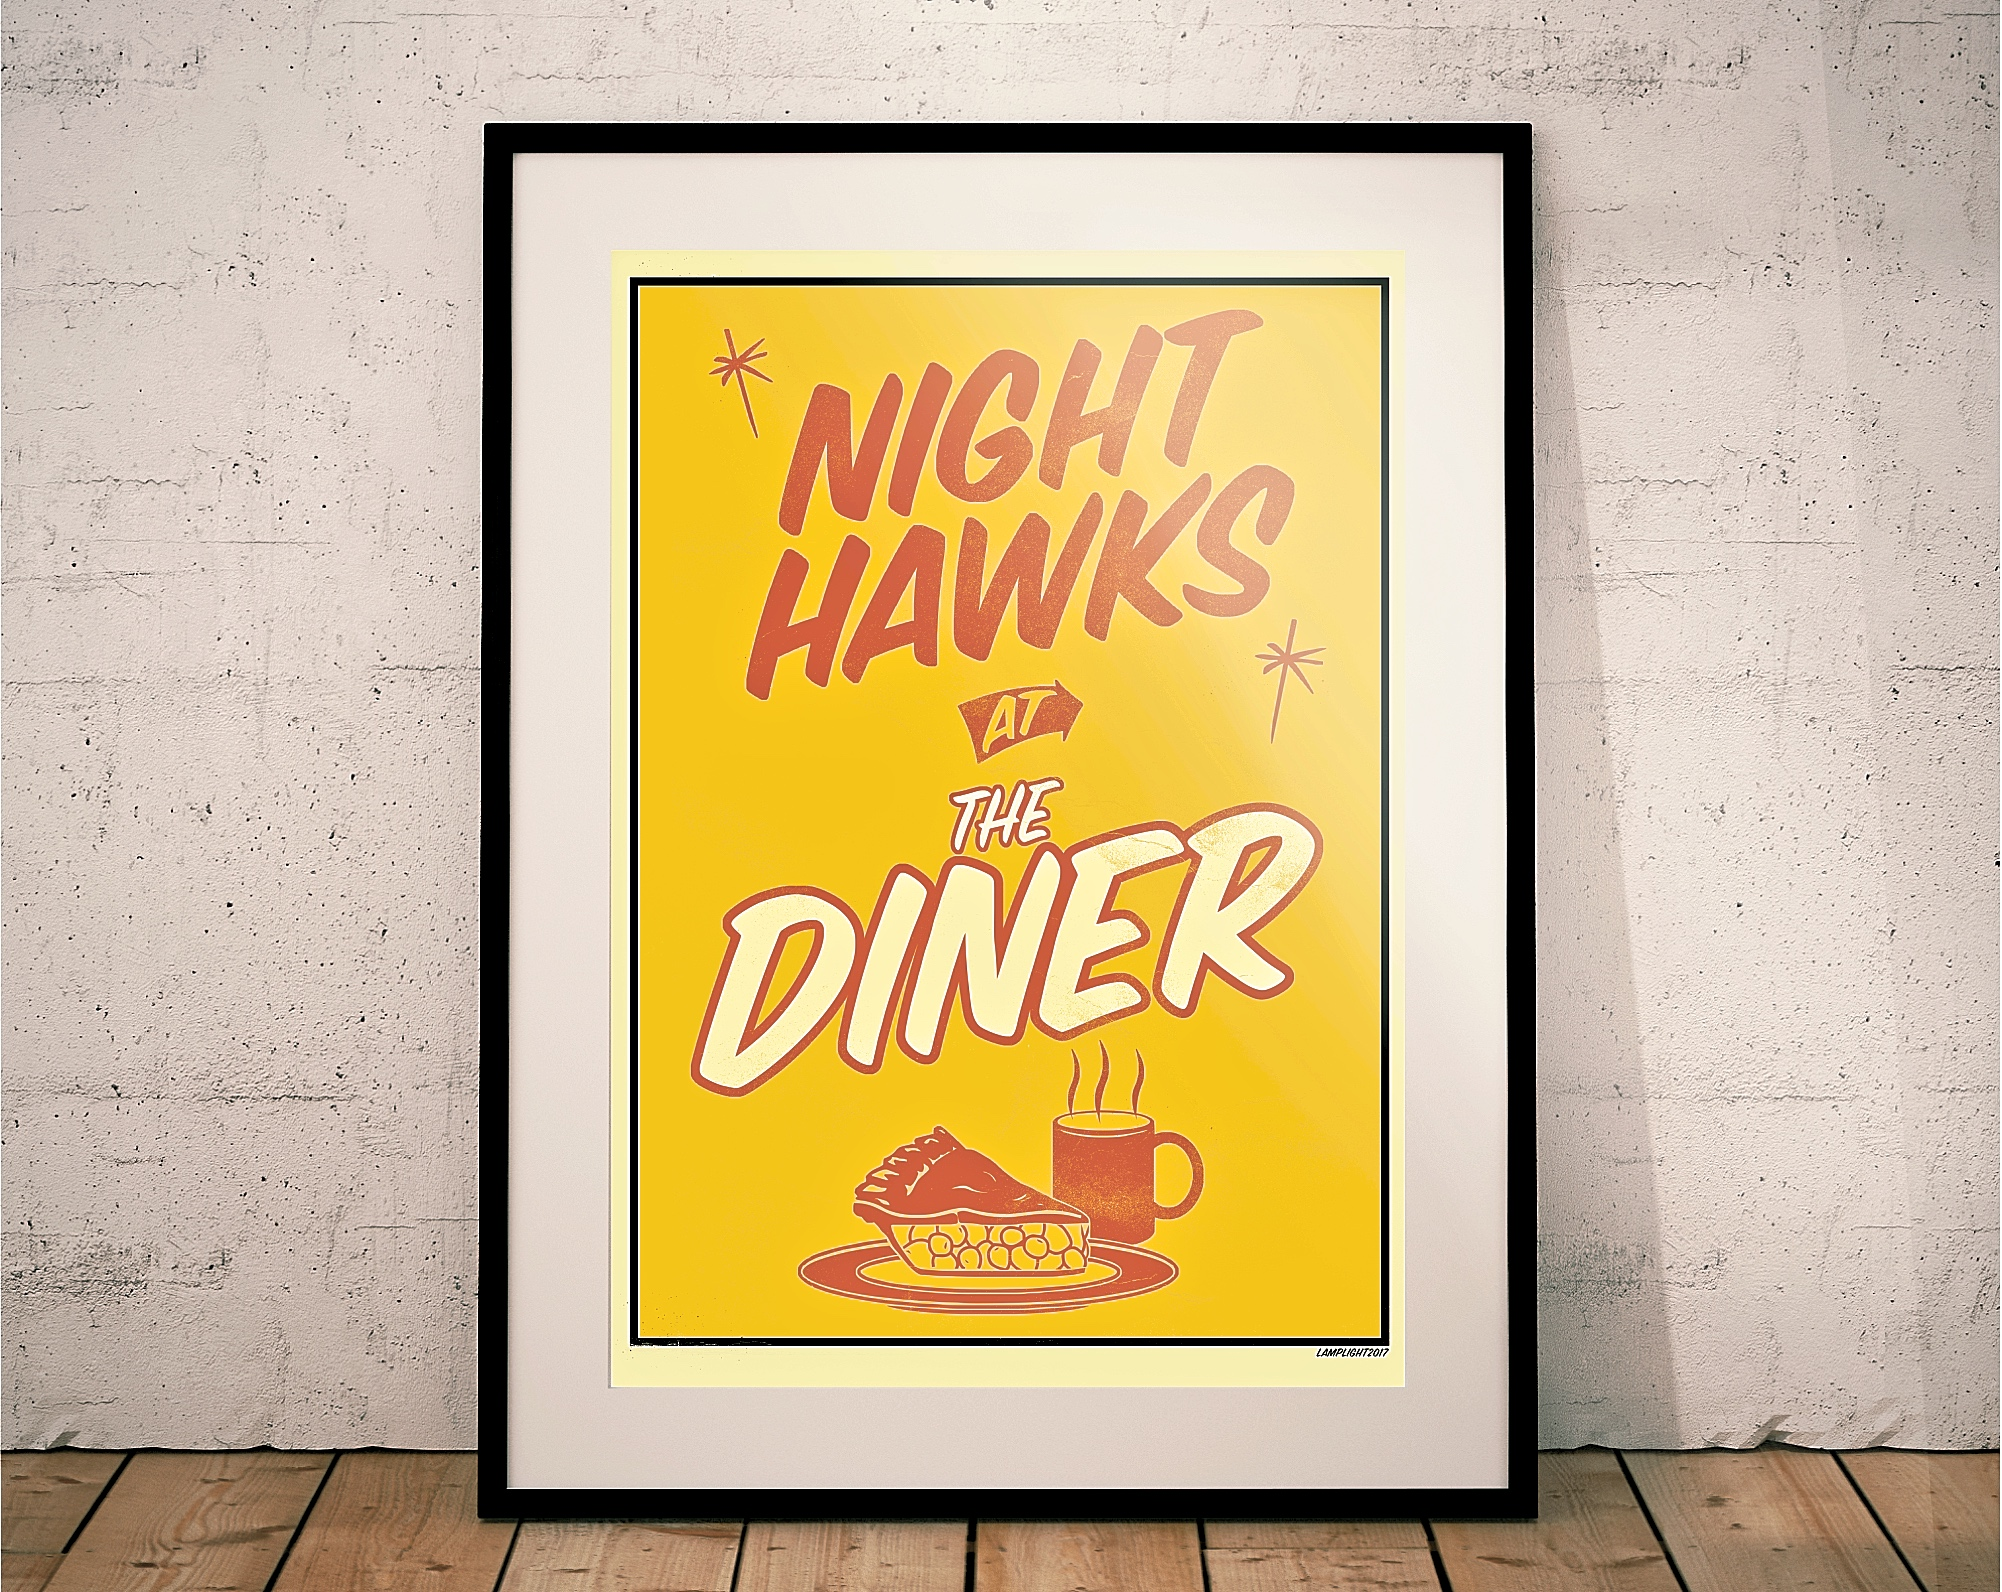 Tom Waits Night Hawks At The Diner Print Poster Edward Hopper Late Night Coffee Lamplight Design Co Online Store Powered By Storenvy